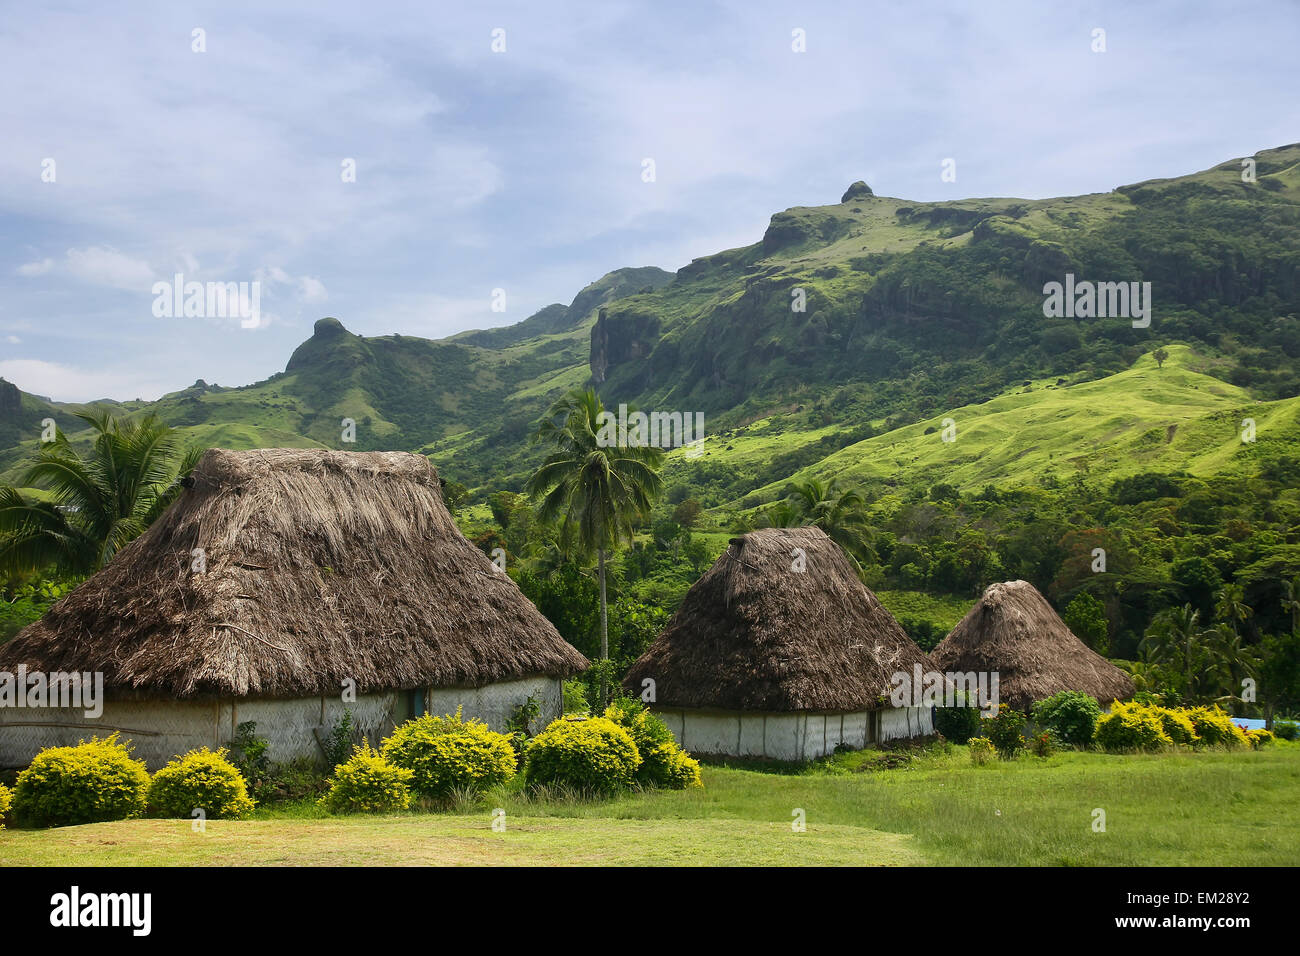 Traditional houses of Navala village, Viti Levu island, Fiji - Stock Image